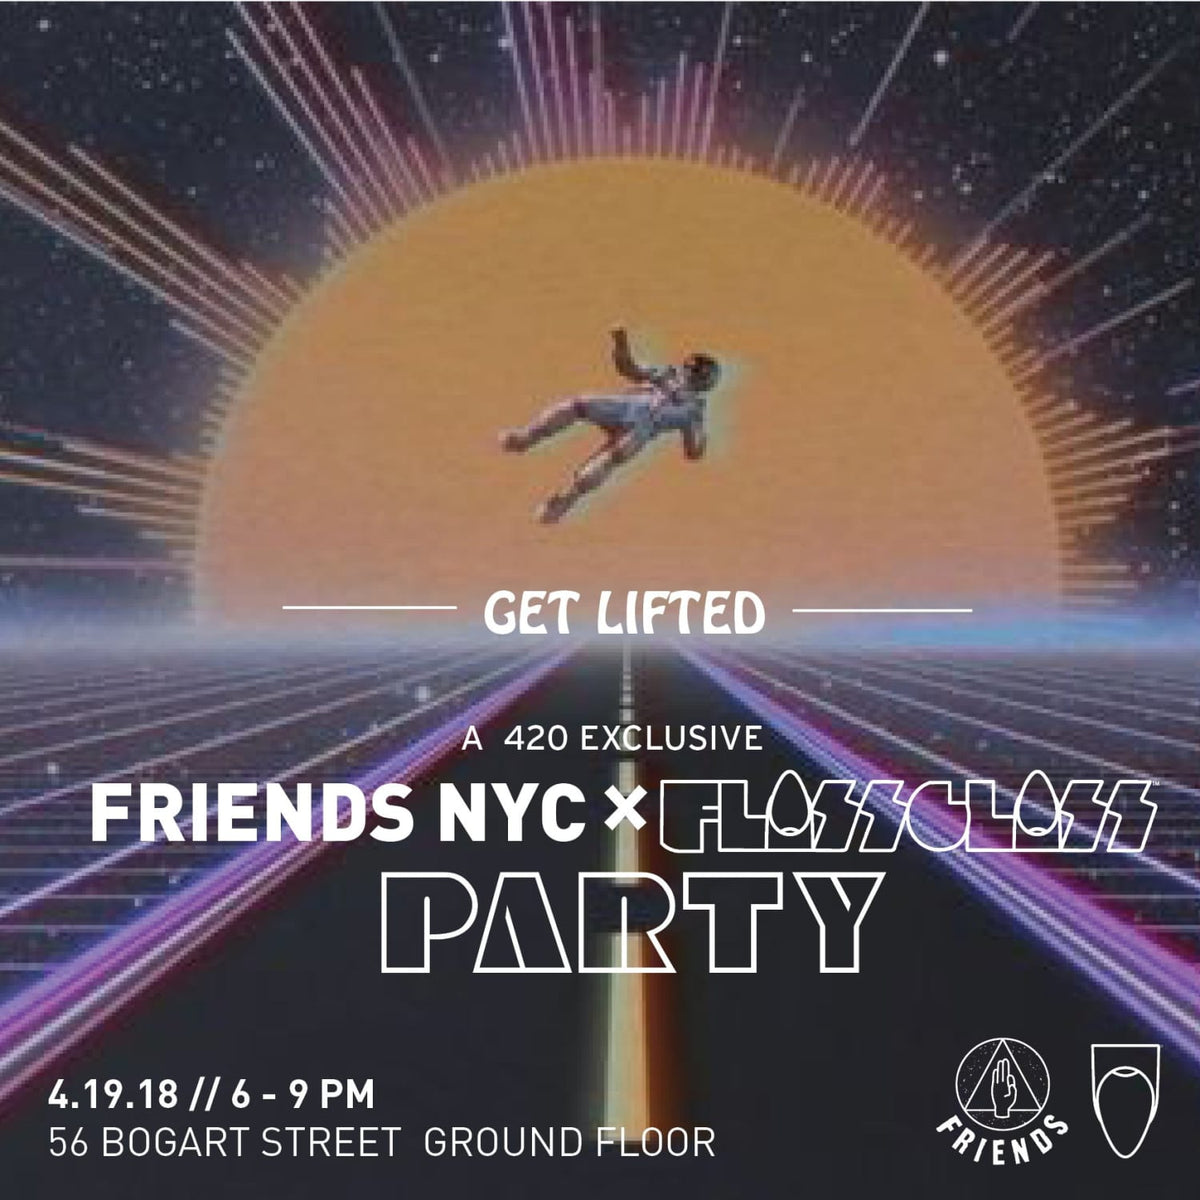 GET LIFTED WITH FRIENDS NYC & FLOSS GLOSS ON 4/19